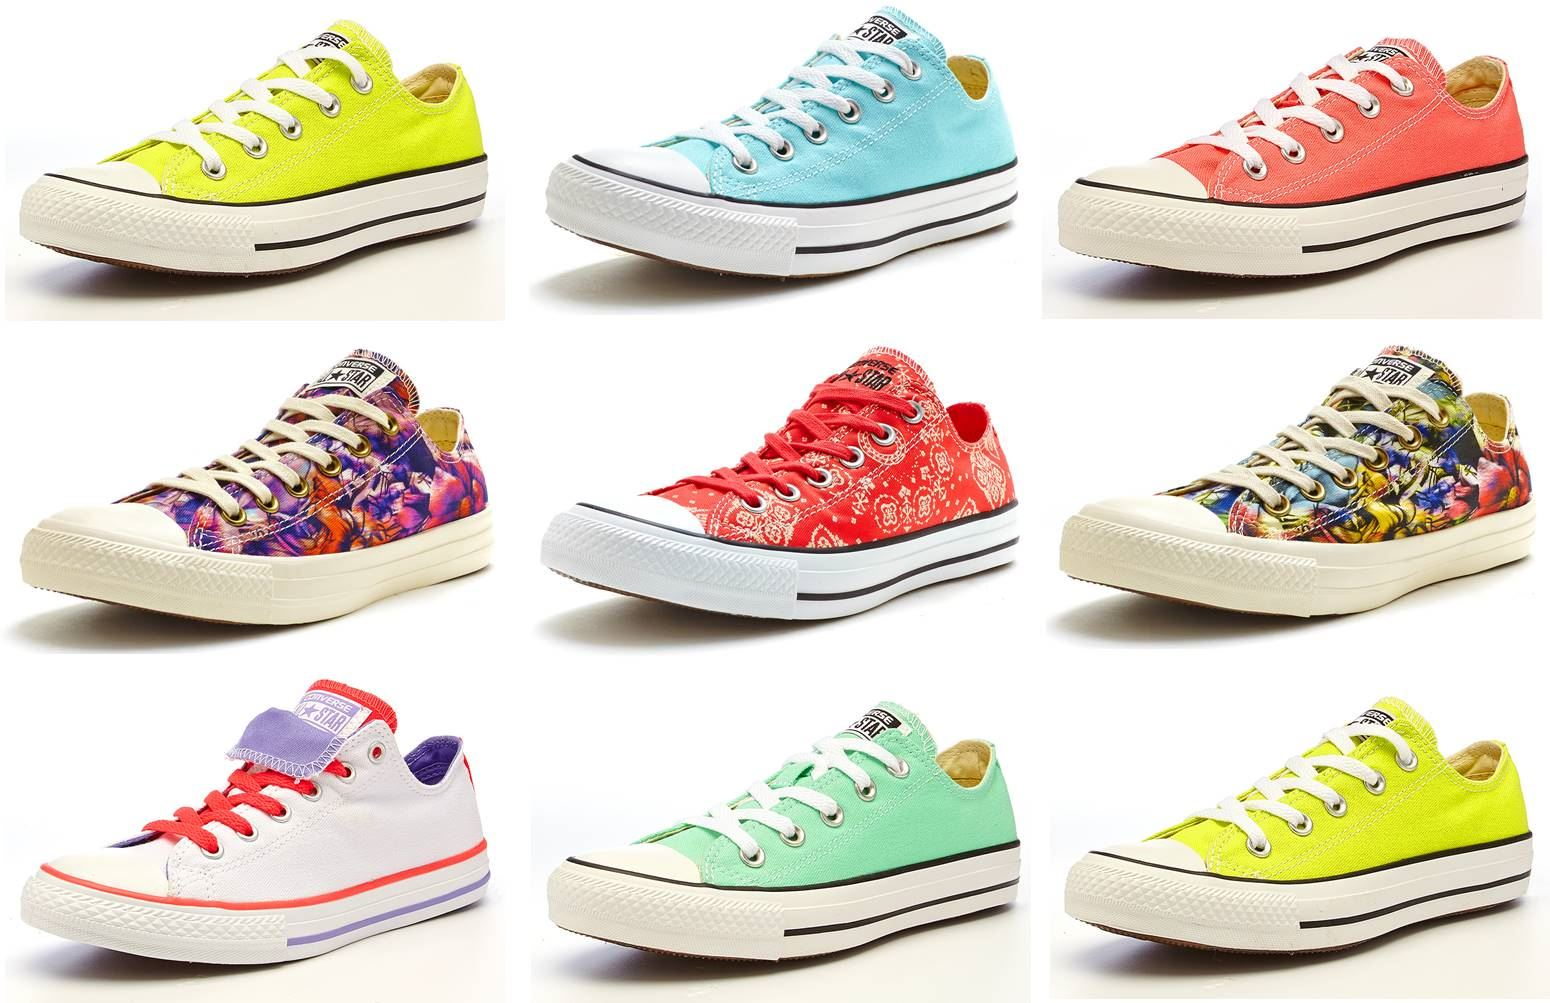 De Fundegue es Colores Zapatos Converse Xwq1TS